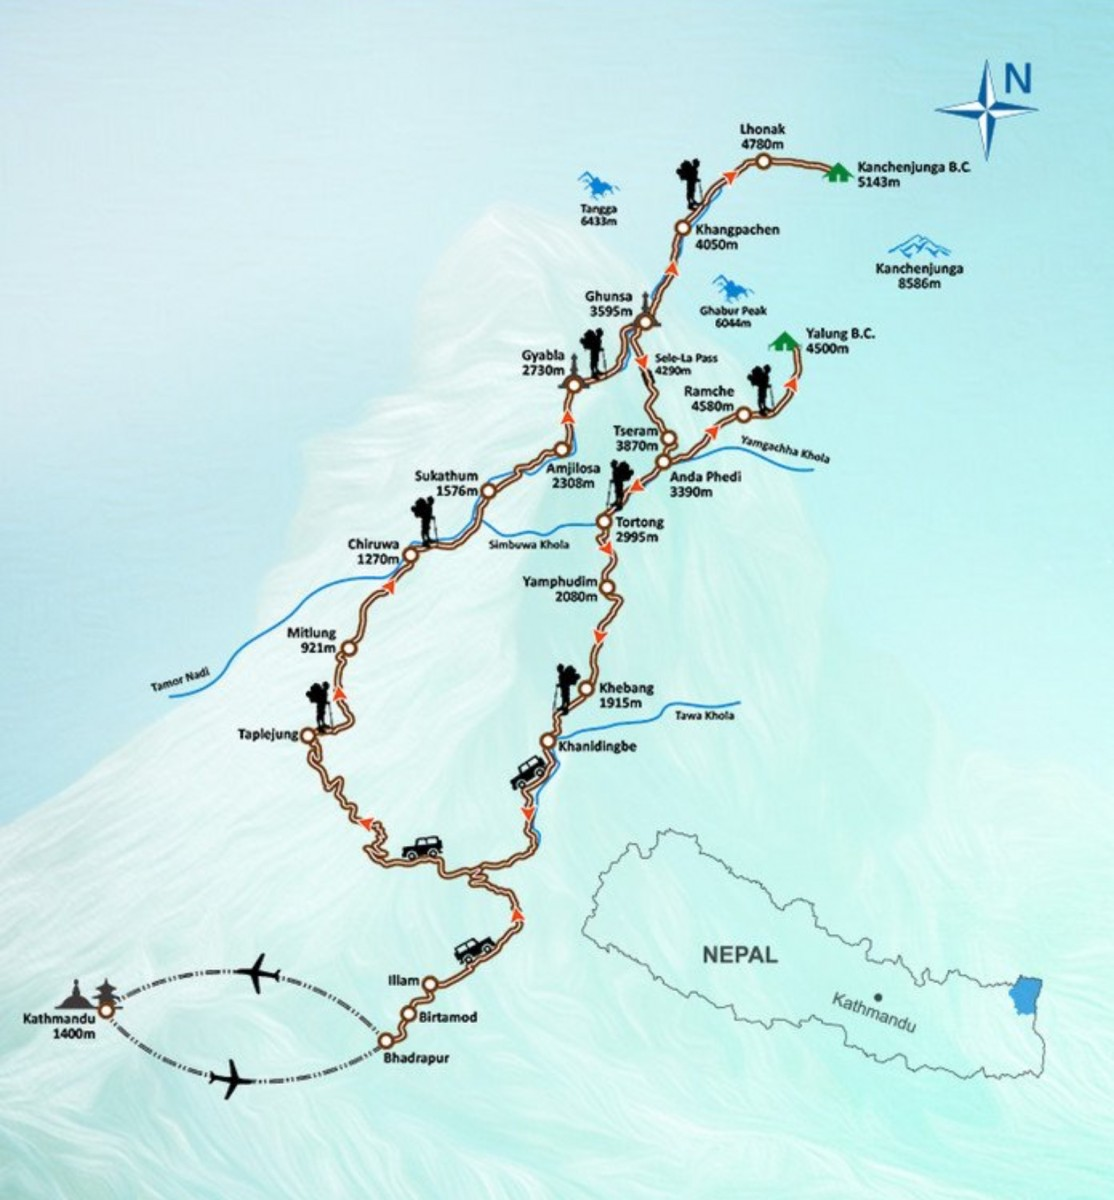 Kanchanjunga North Base Camp Trek Map